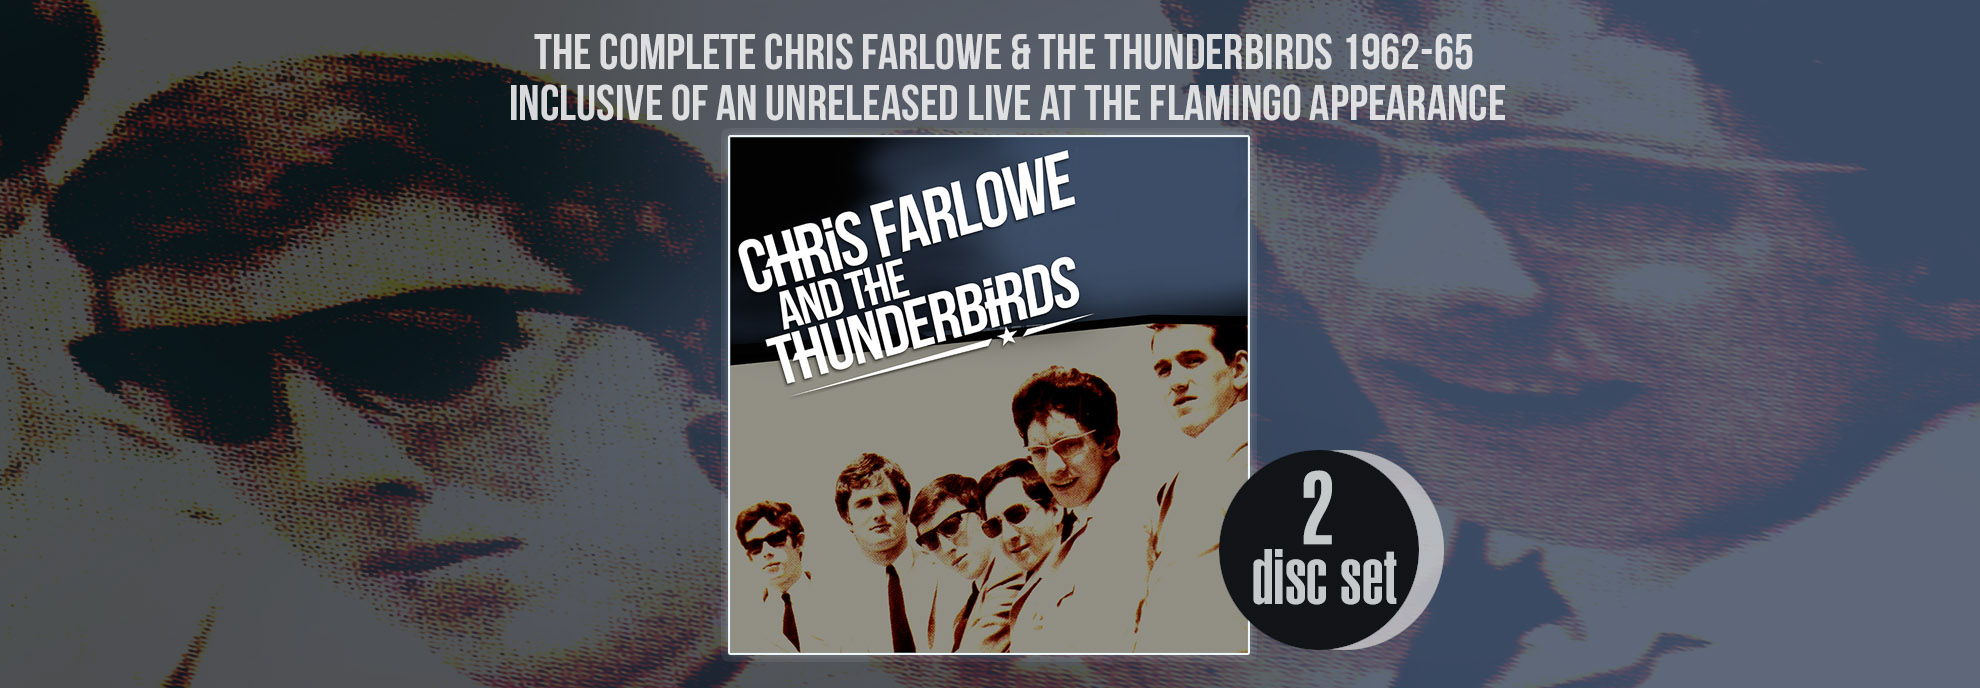 Chis-Farlowe-Thunderbirds-banner